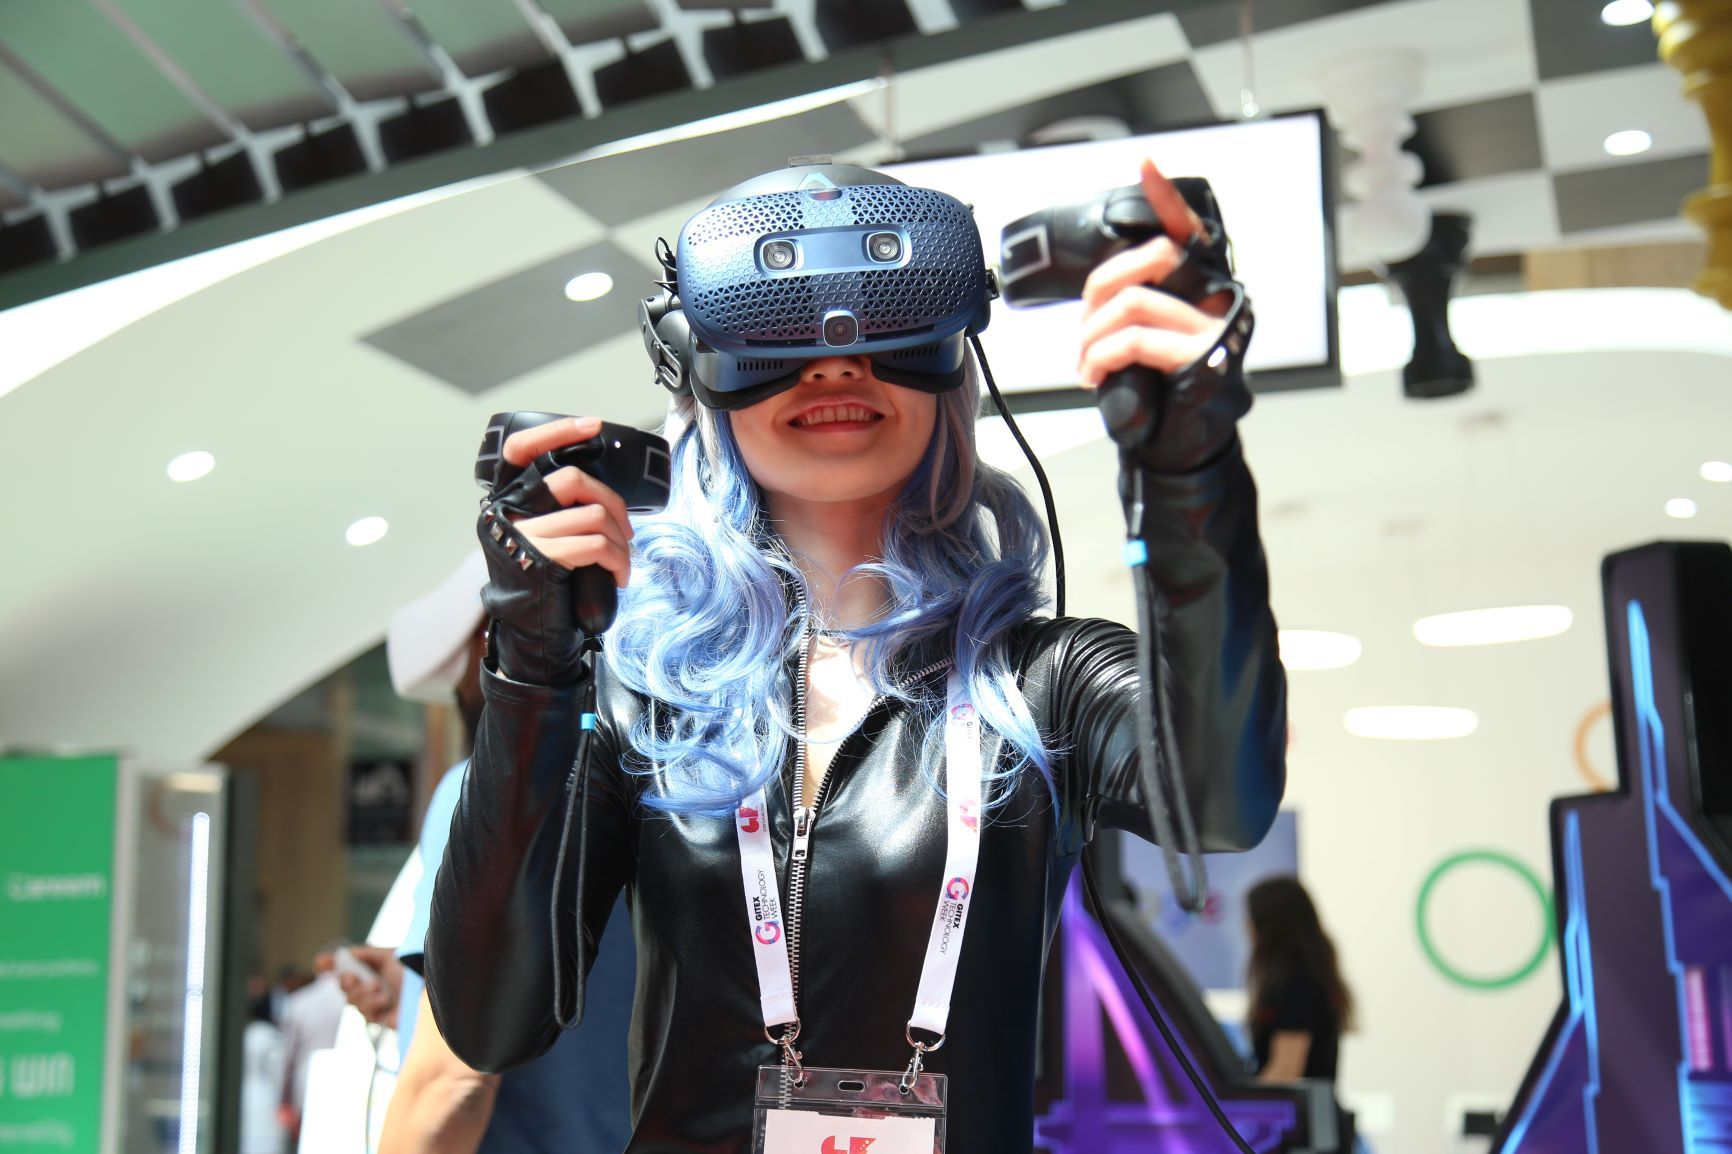 Gitex: A show dominated by Saudi Arabia and the women of the UAE